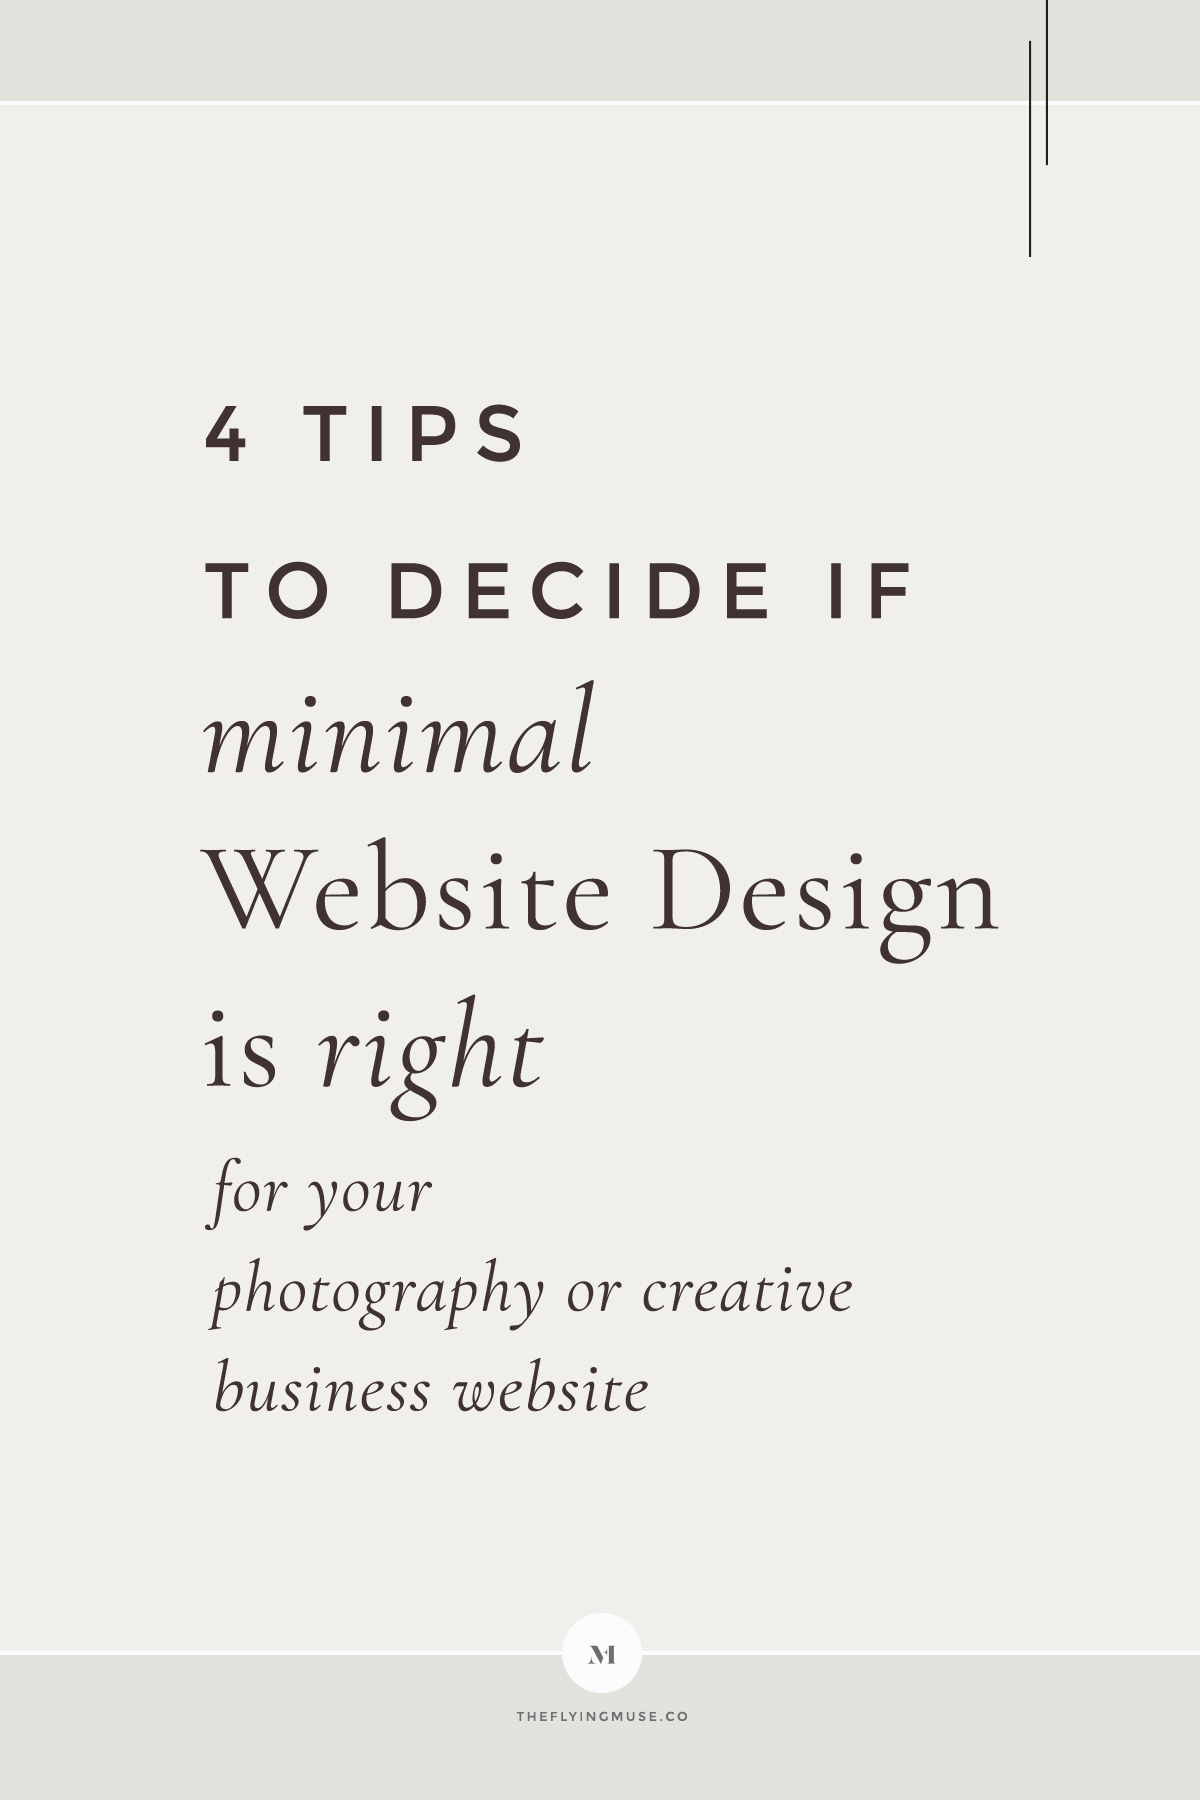 Tips How to decide if minimal website design is right for your photography or creative business website